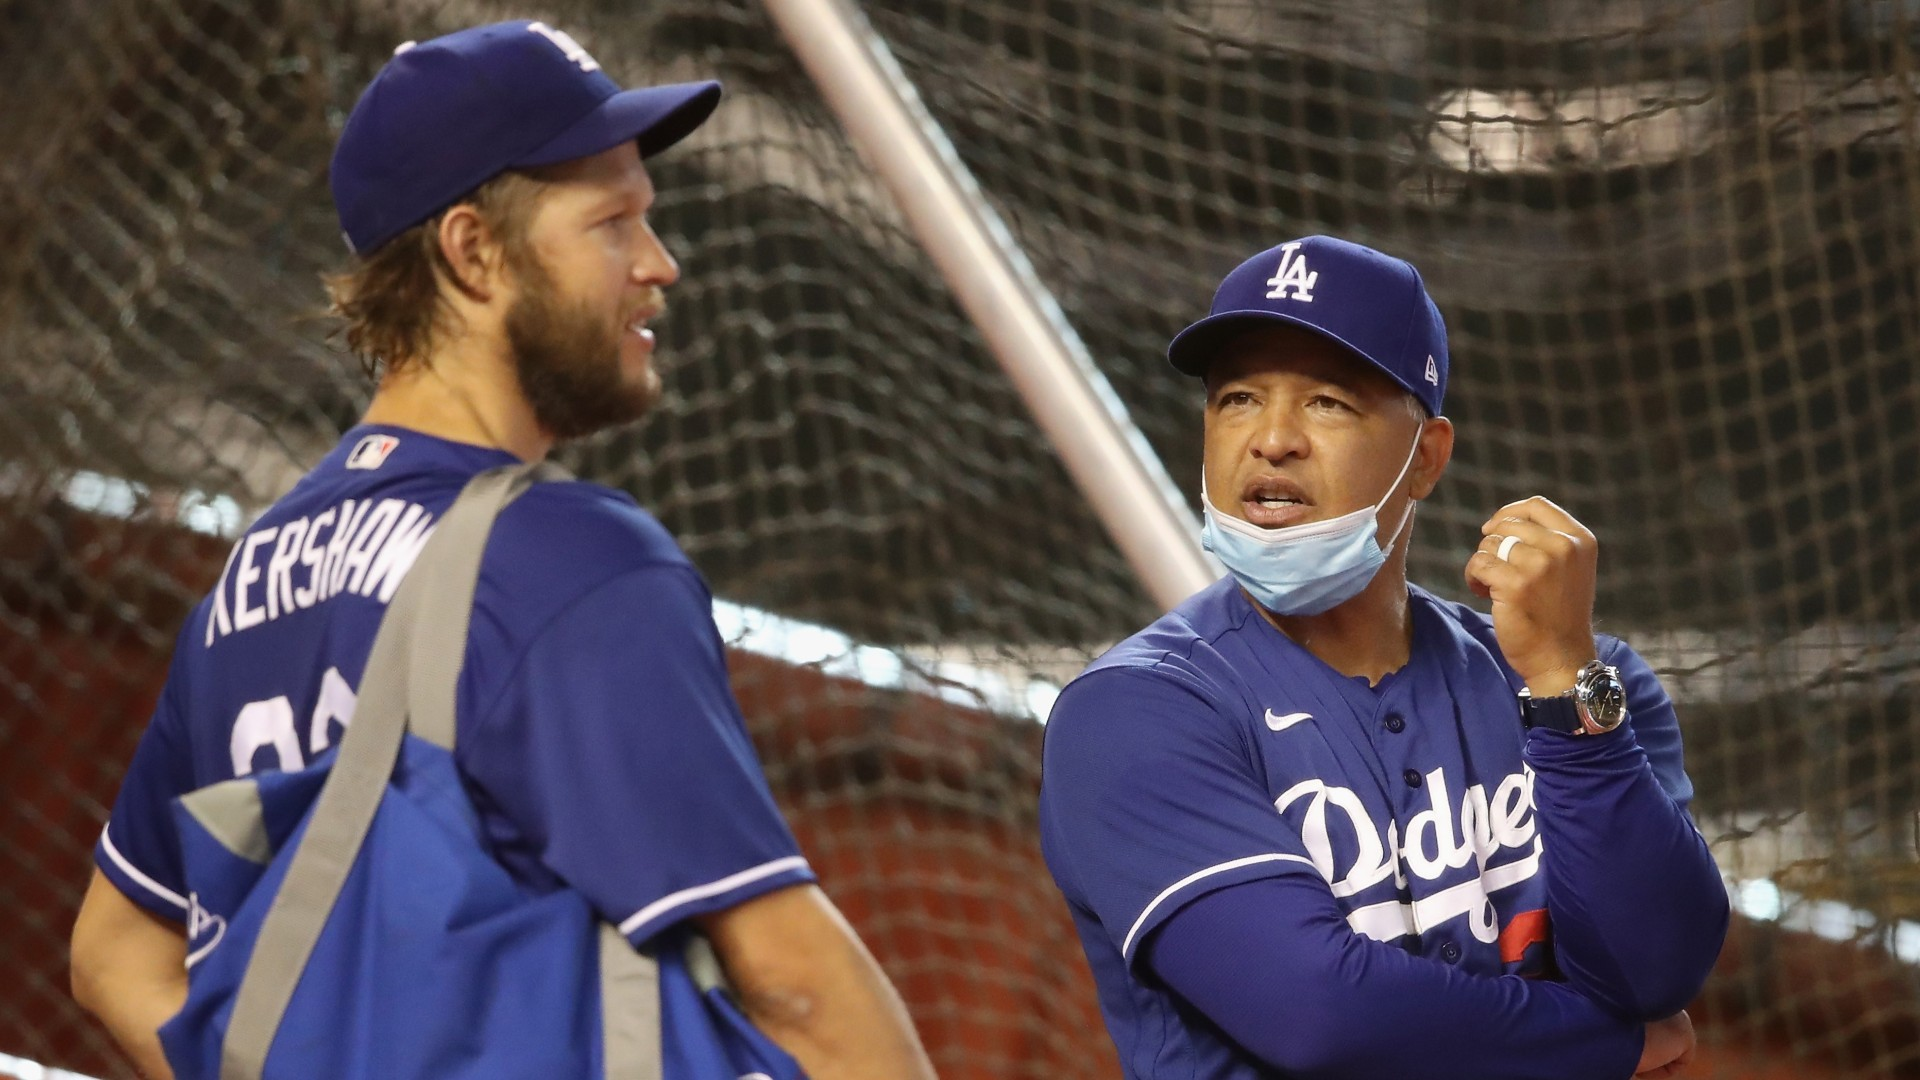 Manager Dave Roberts of the Los Angeles Dodgers talks with pitcher Clayton Kershaw before the MLB game against the Arizona Diamondbacks at Chase Field on July 30, 2020 in Phoenix, Arizona. (Photo by Christian Petersen/Getty Images)